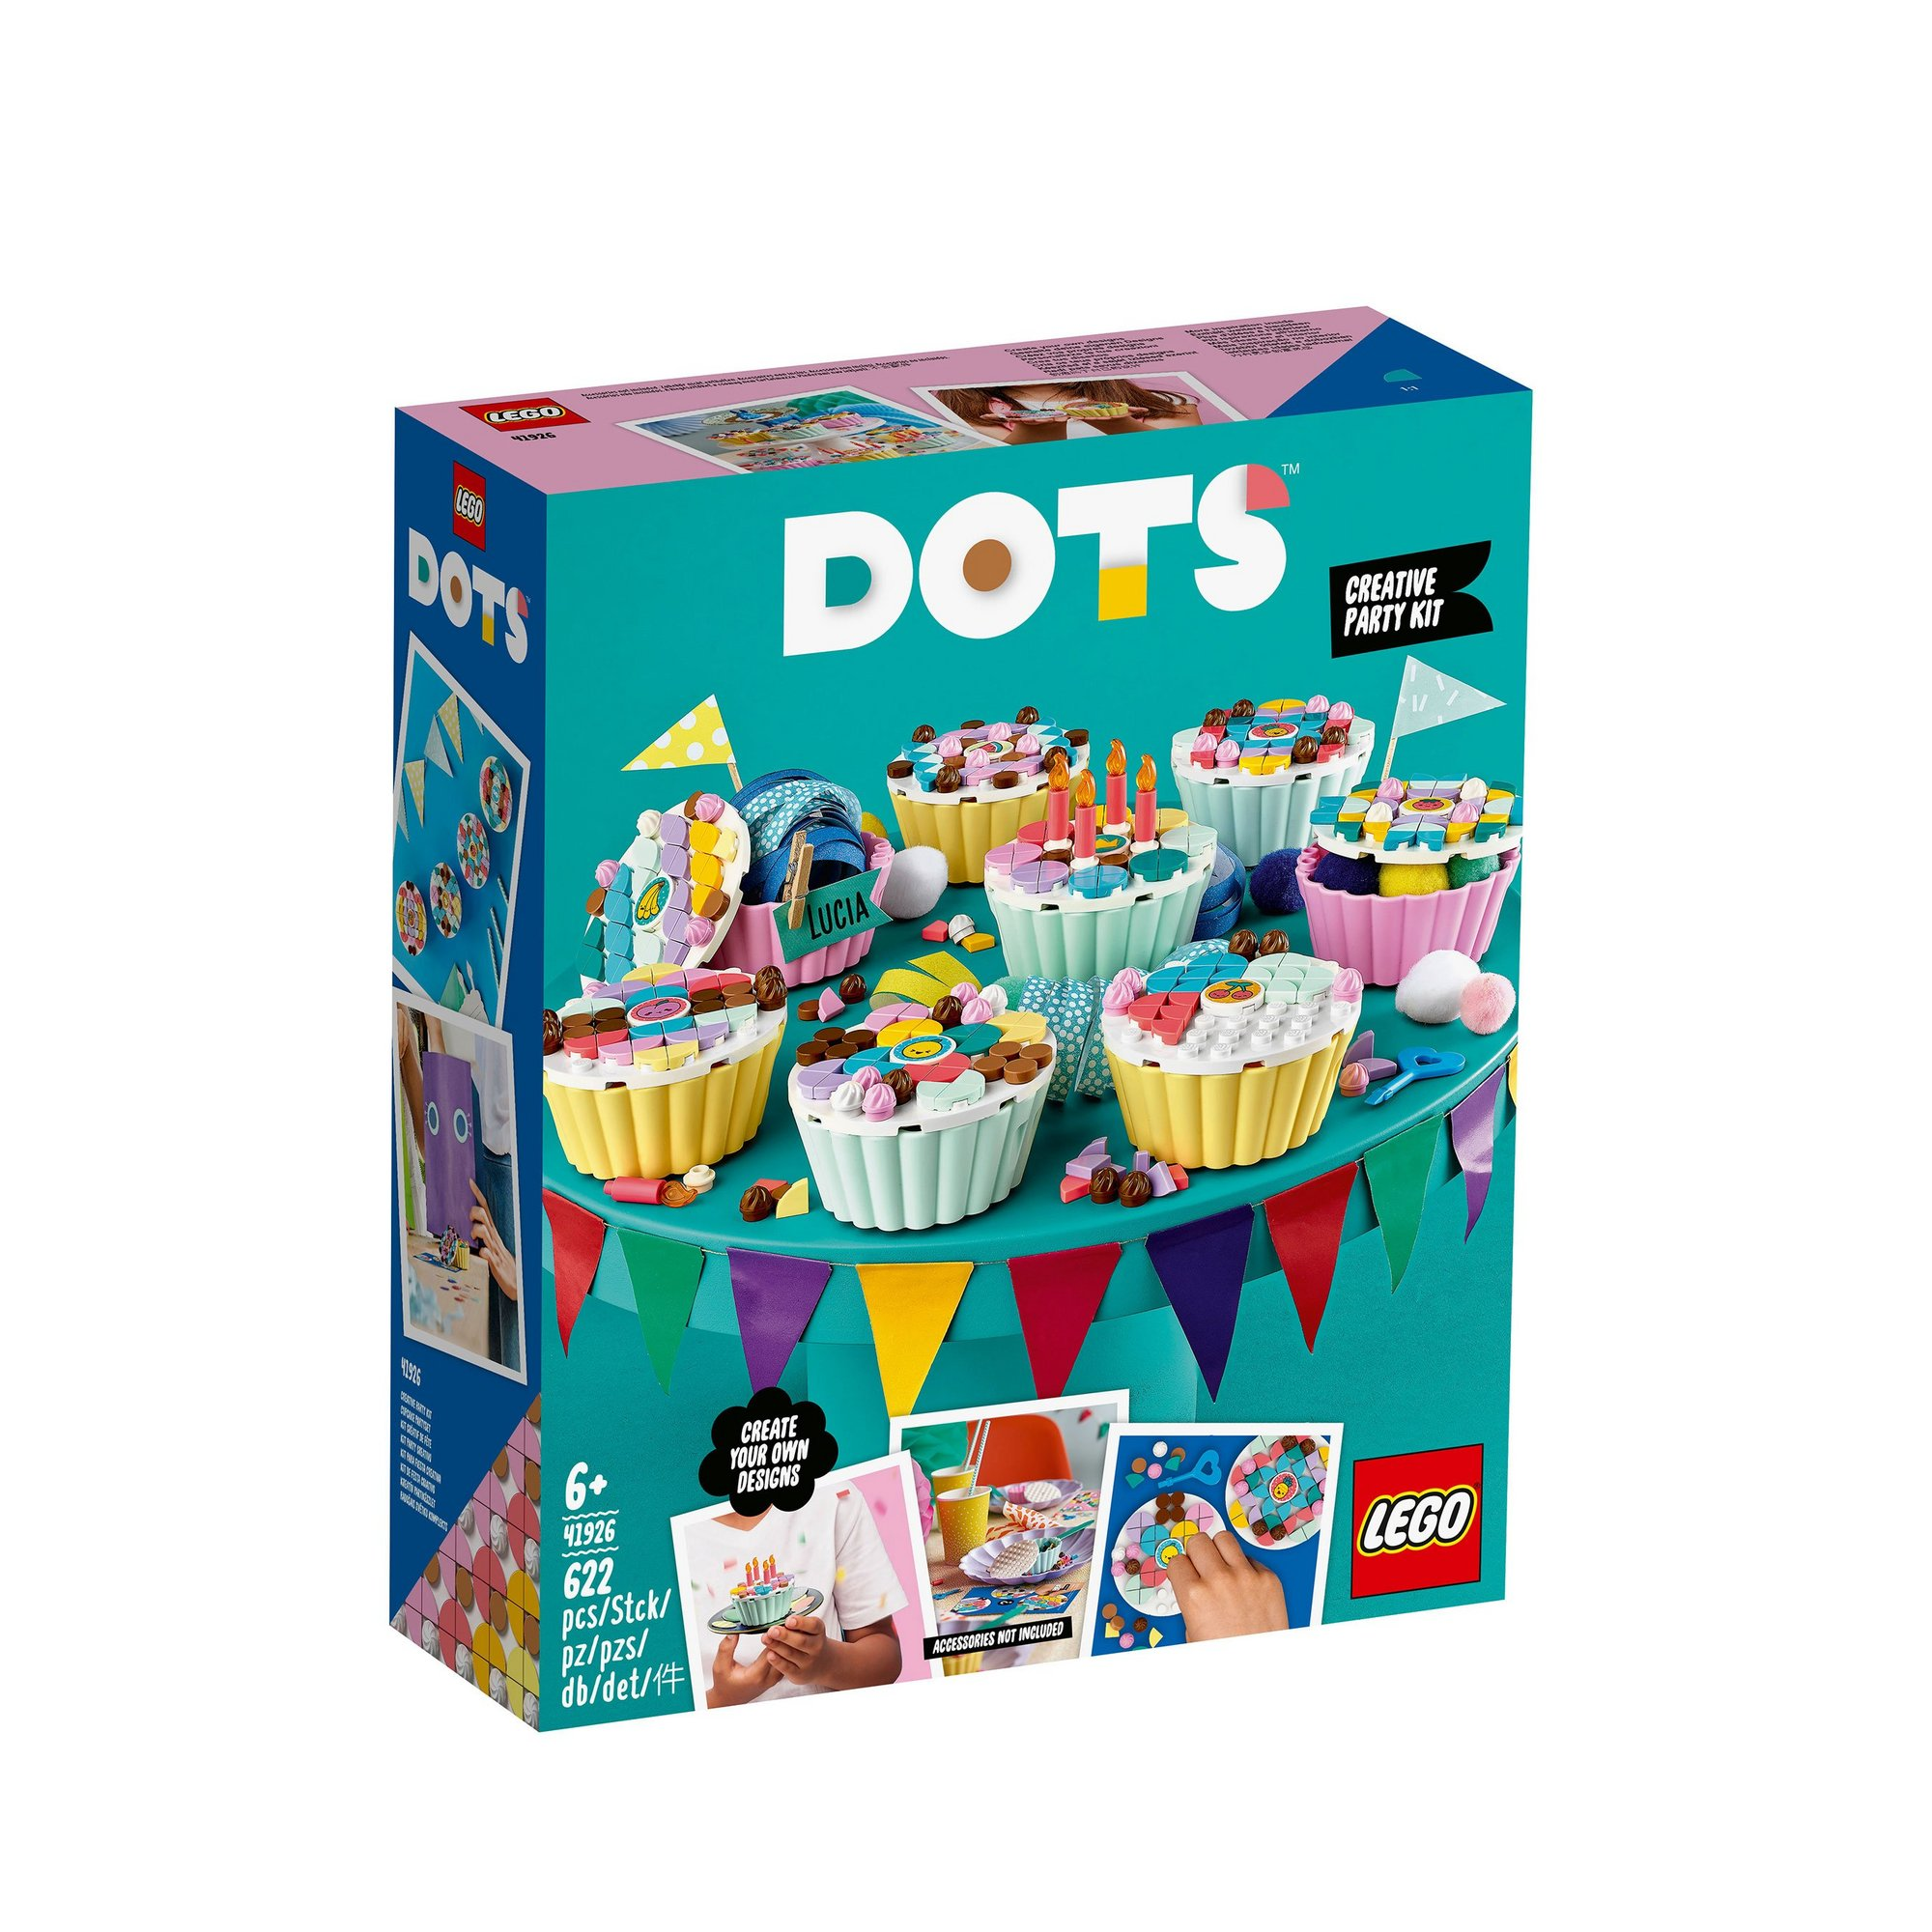 Image of LEGO DOTS Creative Party Kit